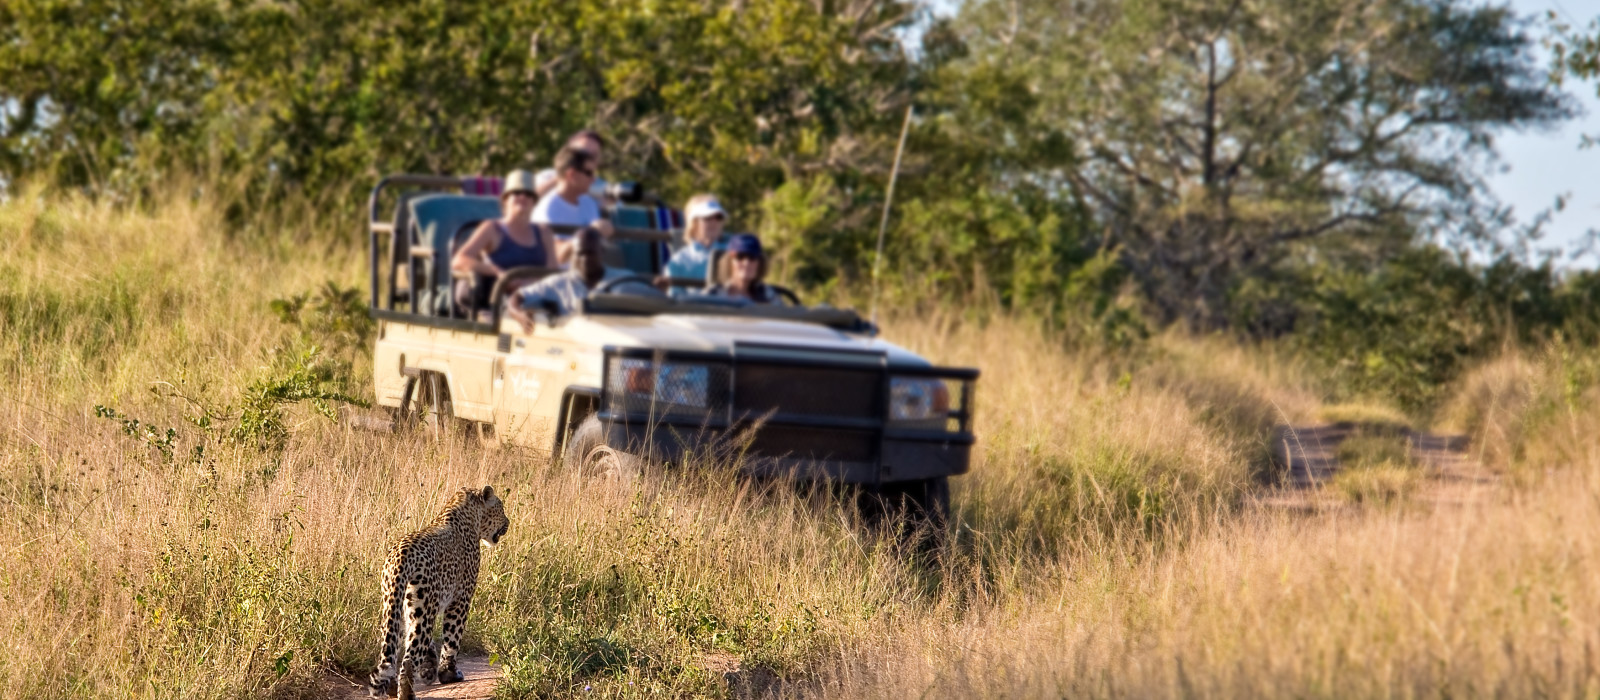 South Africa Overland: Highlights of the Cape Tour Trip 1